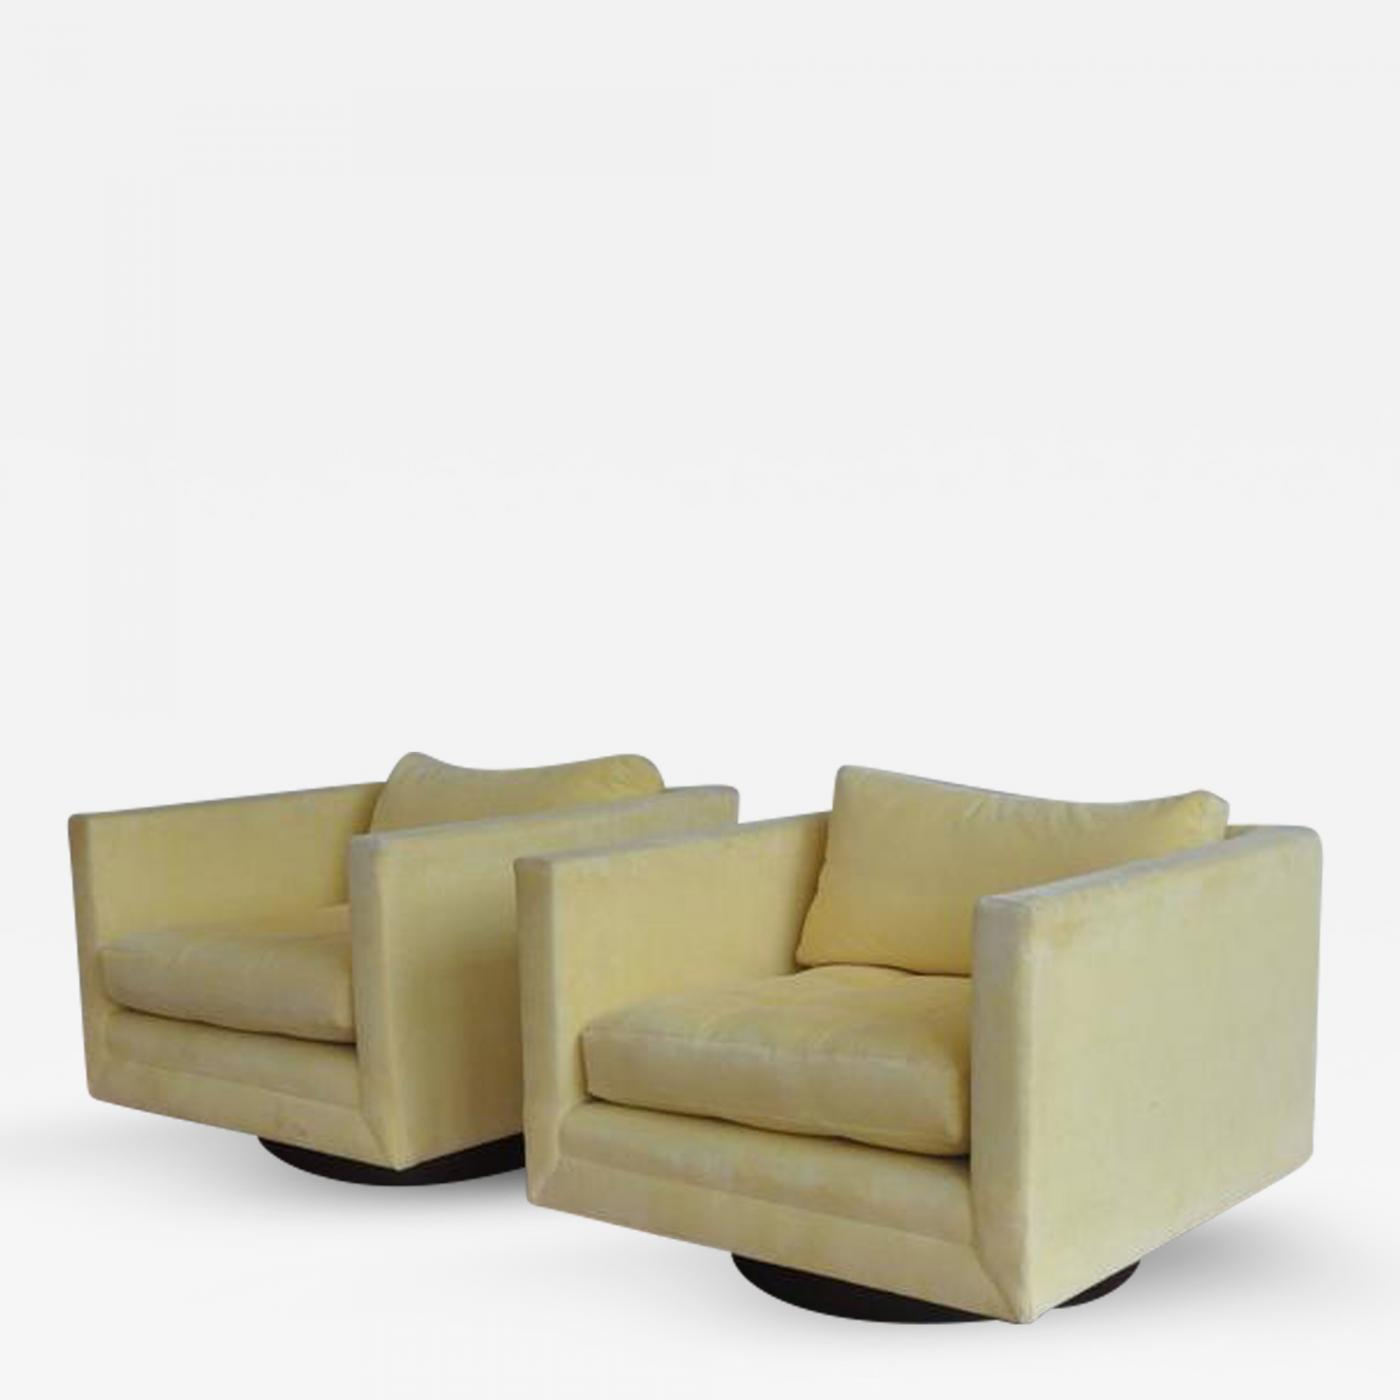 Cube Chairs Harvey Probber Pair Of Harvey Probber Swivel Cube Chairs